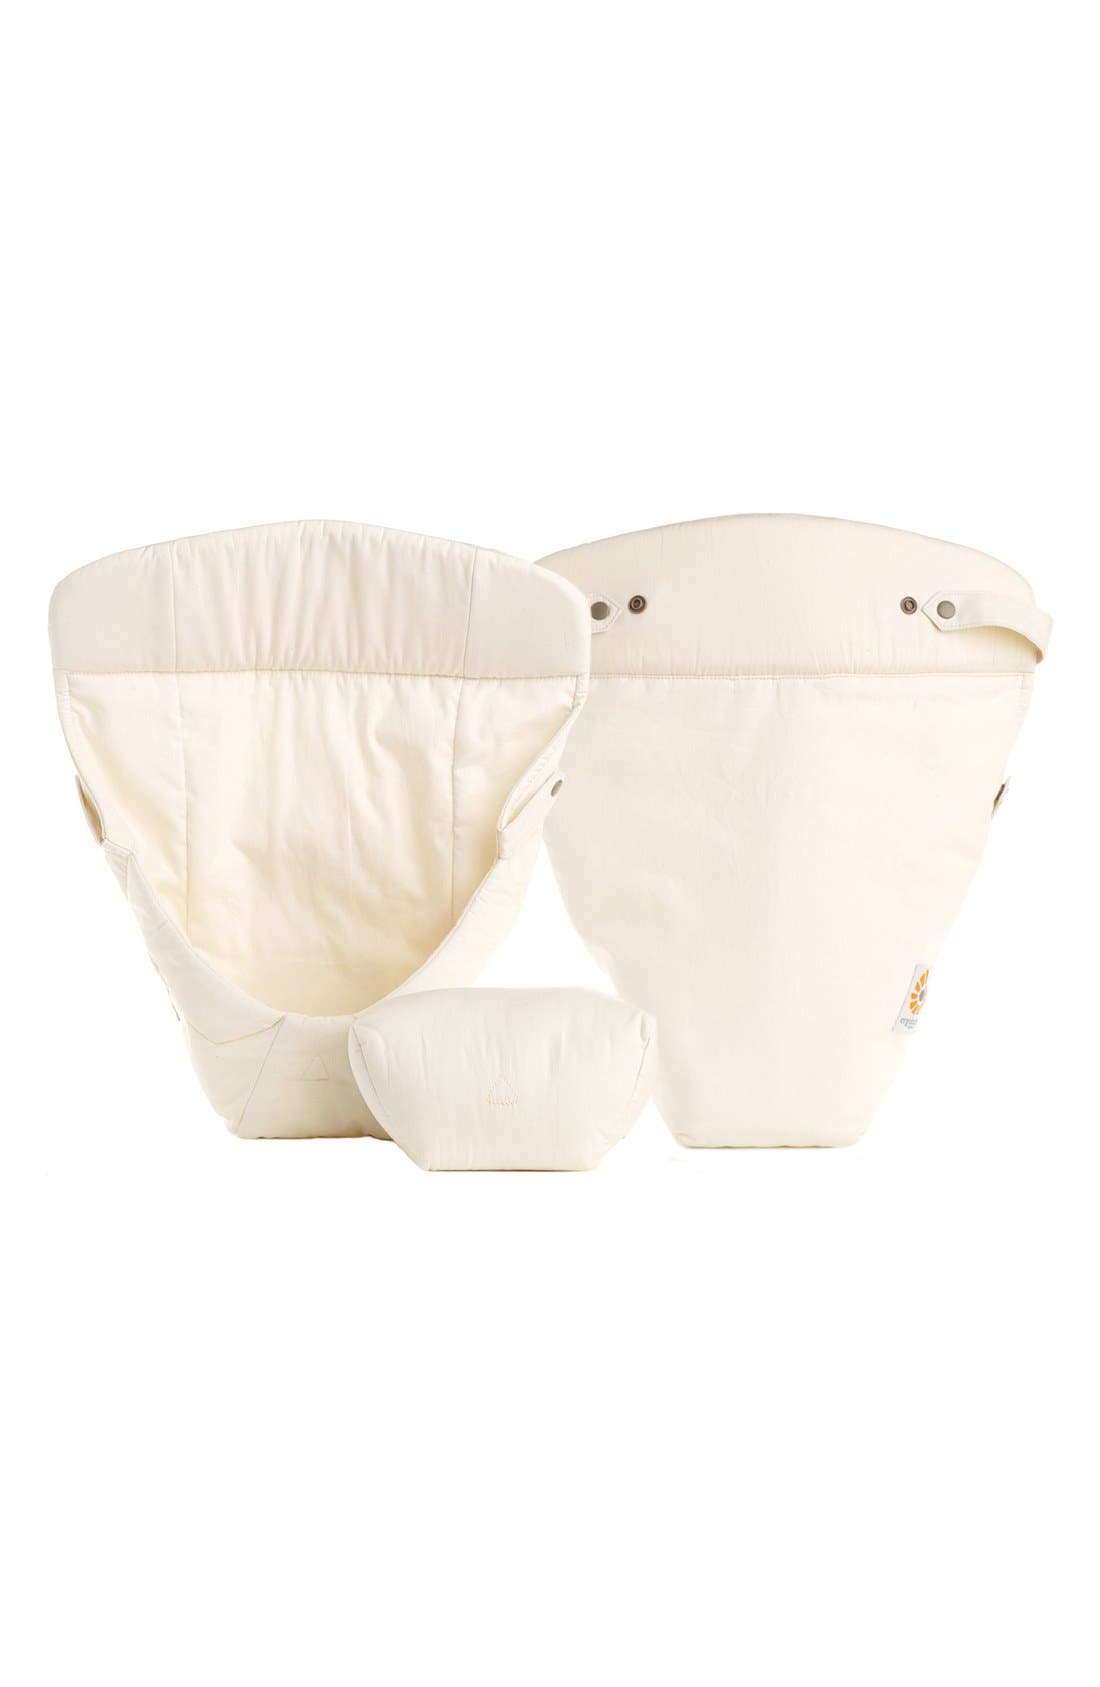 'Easy Snug' Organic Cotton Baby Insert,                         Main,                         color, Natural